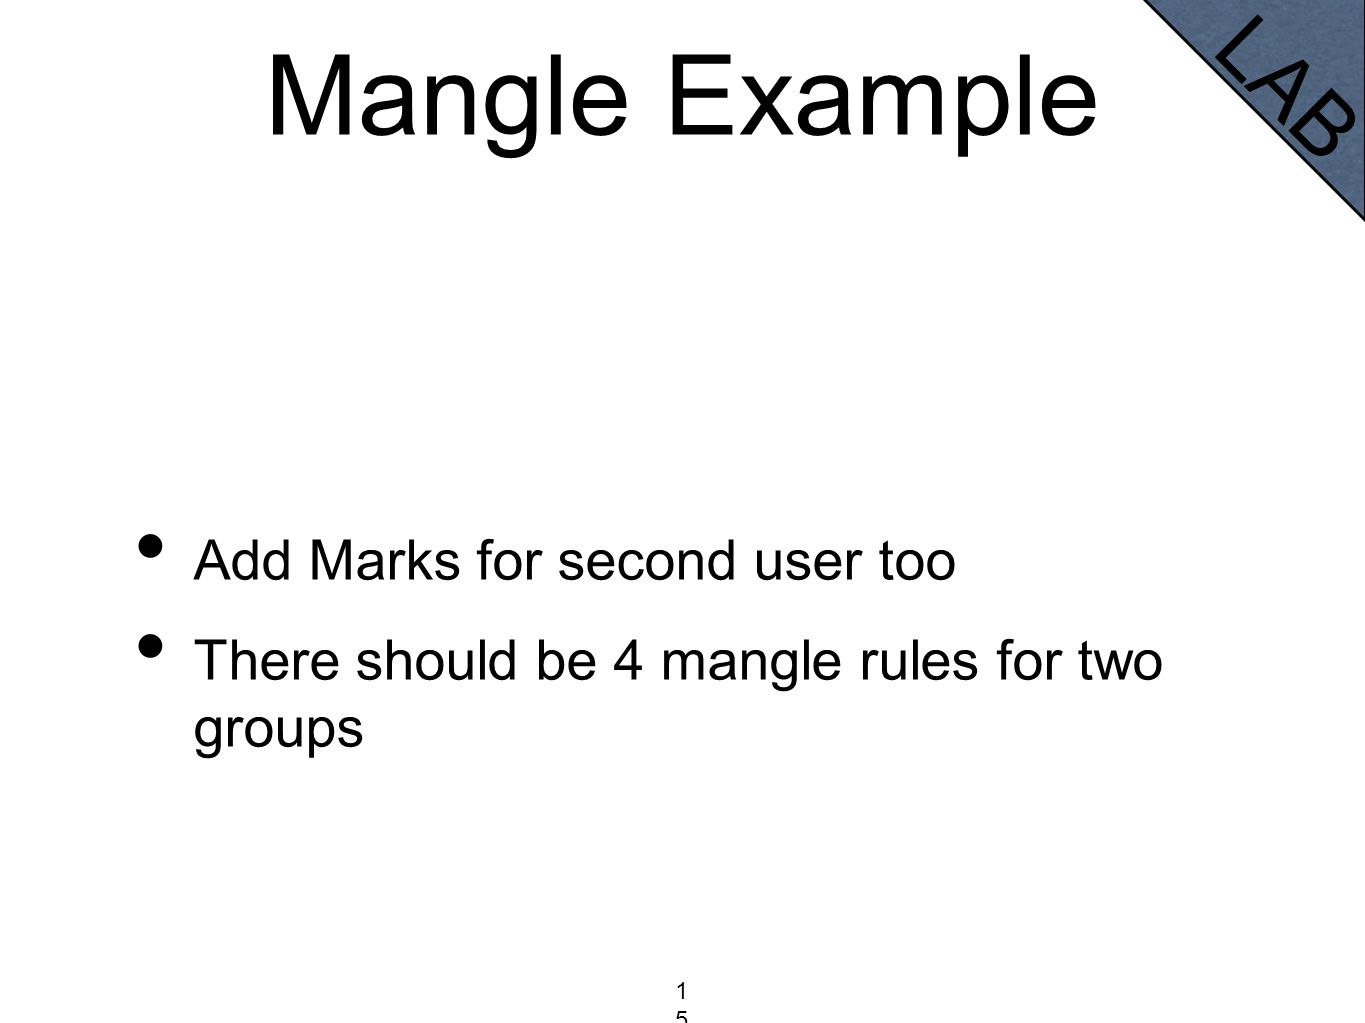 Mangle Example 153153153 Add Marks for second user too There should be 4 mangle rules for two groups LAB